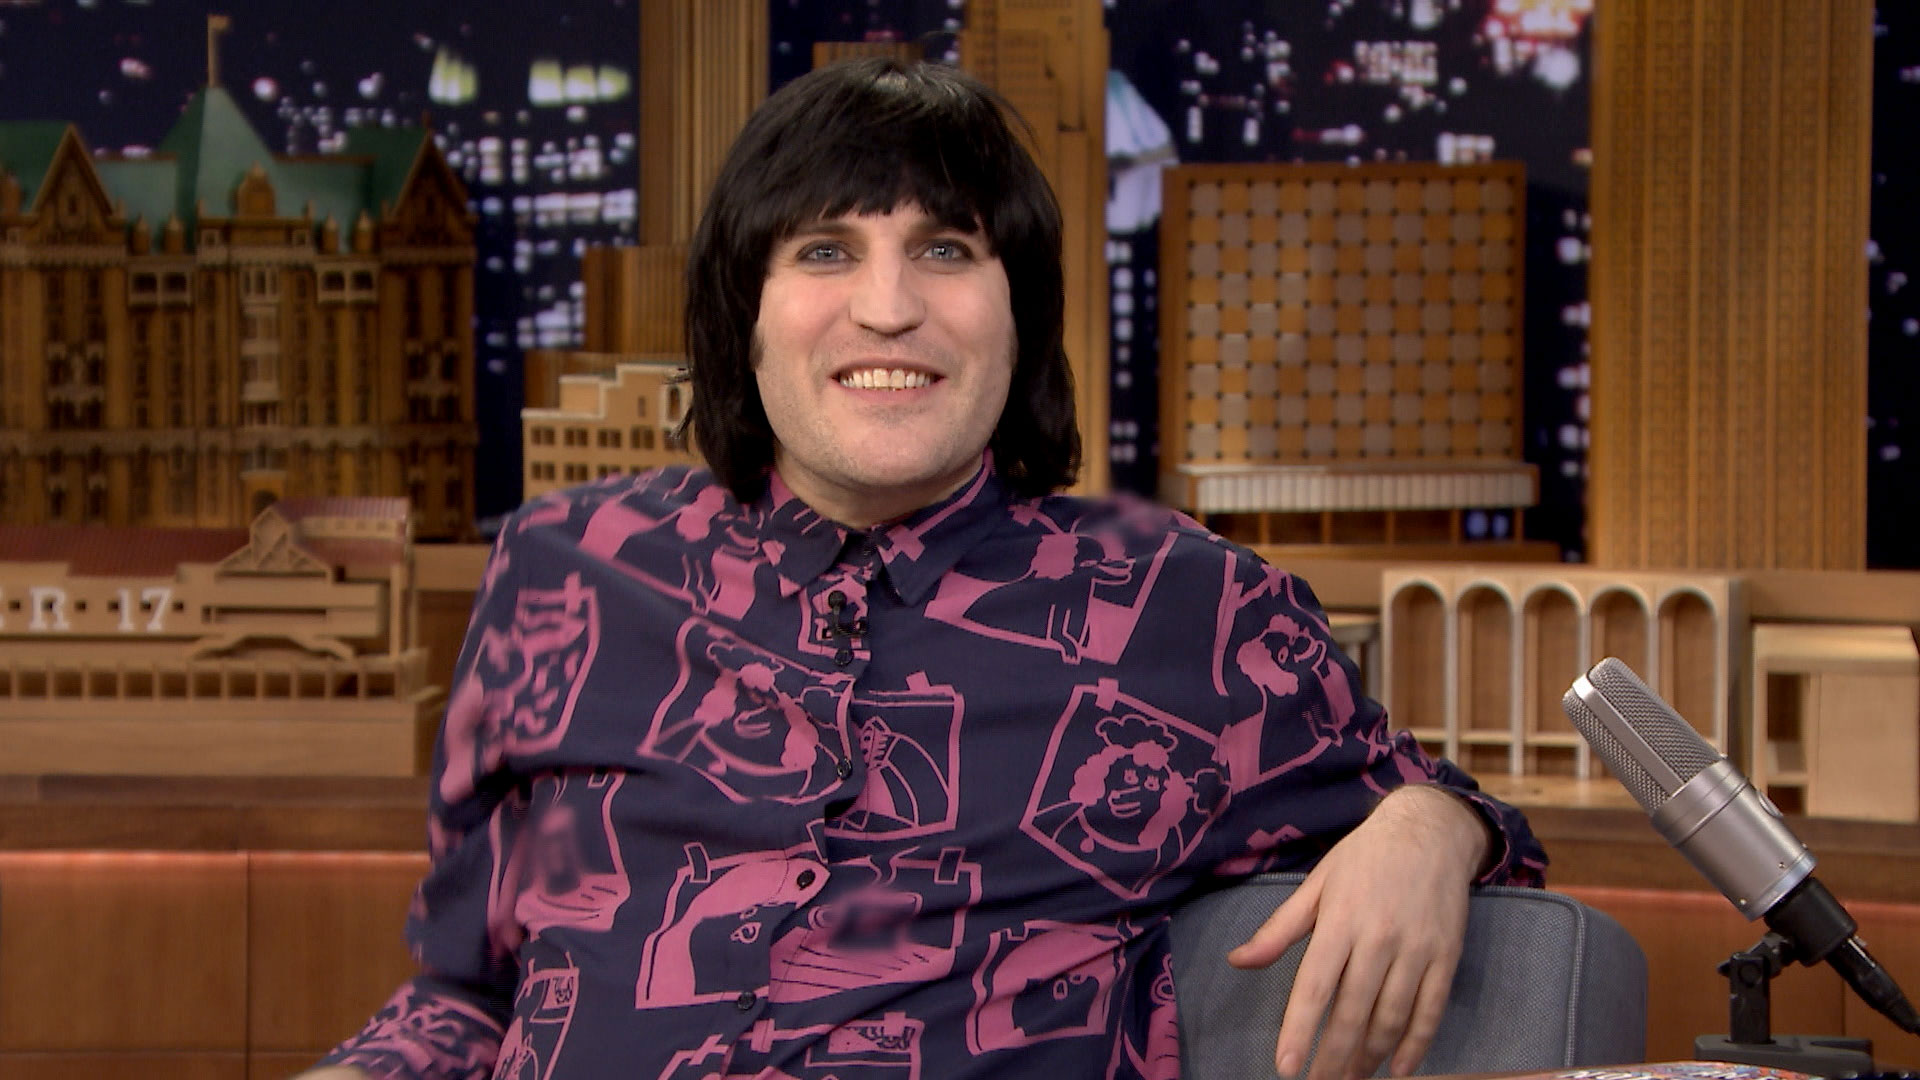 noel fielding and russell brandnoel fielding and julian barratt, noel fielding 2017, noel fielding richard ayoade, noel fielding parents, noel fielding's luxury comedy, noel fielding vk, noel fielding show, noel fielding qi, noel fielding paintings, noel fielding instagram, noel fielding dress, noel fielding conan, noel fielding and russell brand, noel fielding interview, noel fielding band, noel fielding chris corner, noel fielding luxury, noel fielding and paloma faith, noel fielding live, noel fielding kasabian